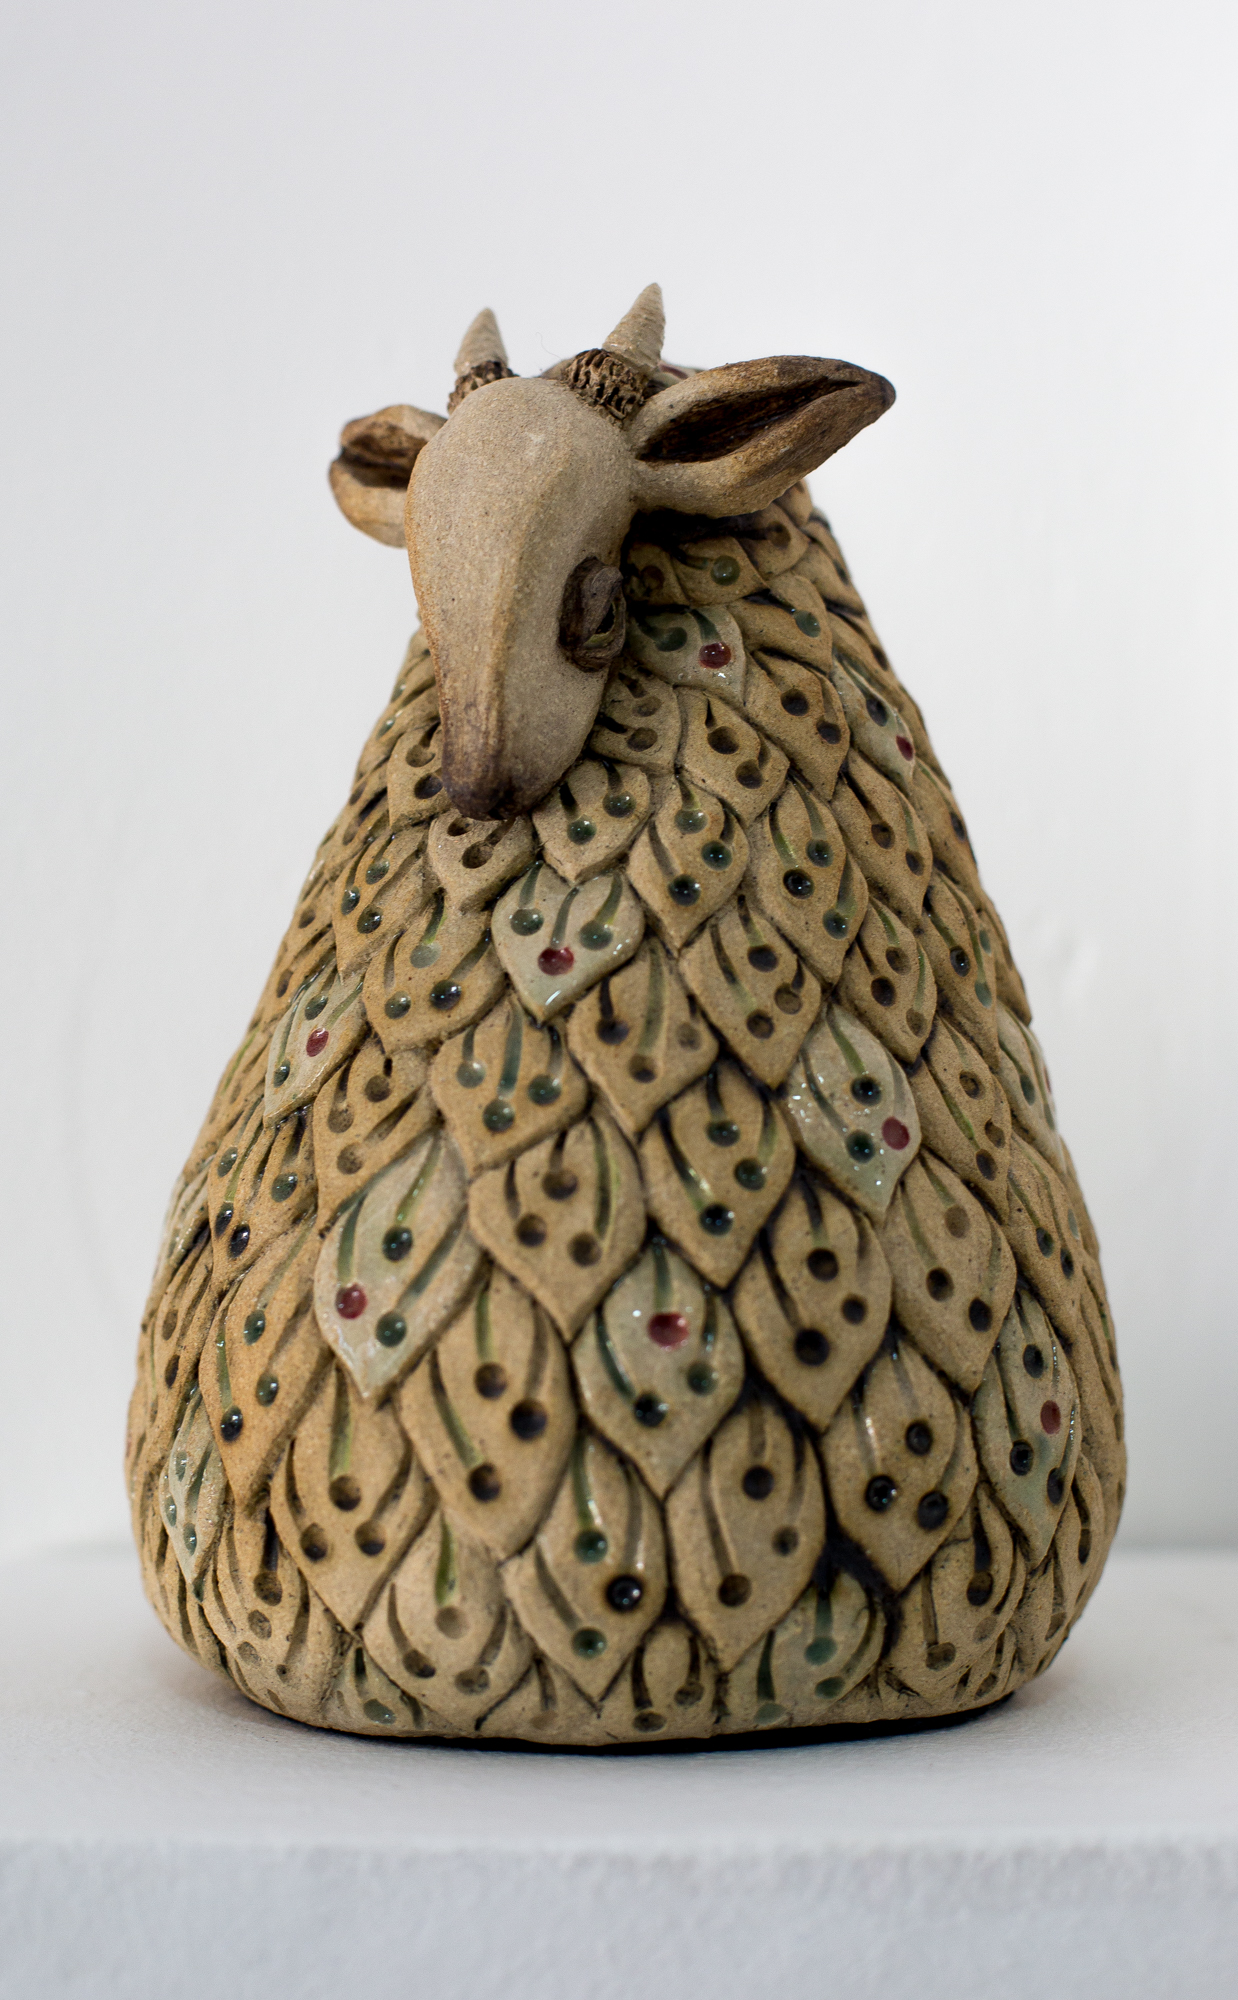 ' Gentle '   Alexis Aronson  Ceramic, under glaze and metal oxides  180 mm tall  R 5000.00 excl. vat